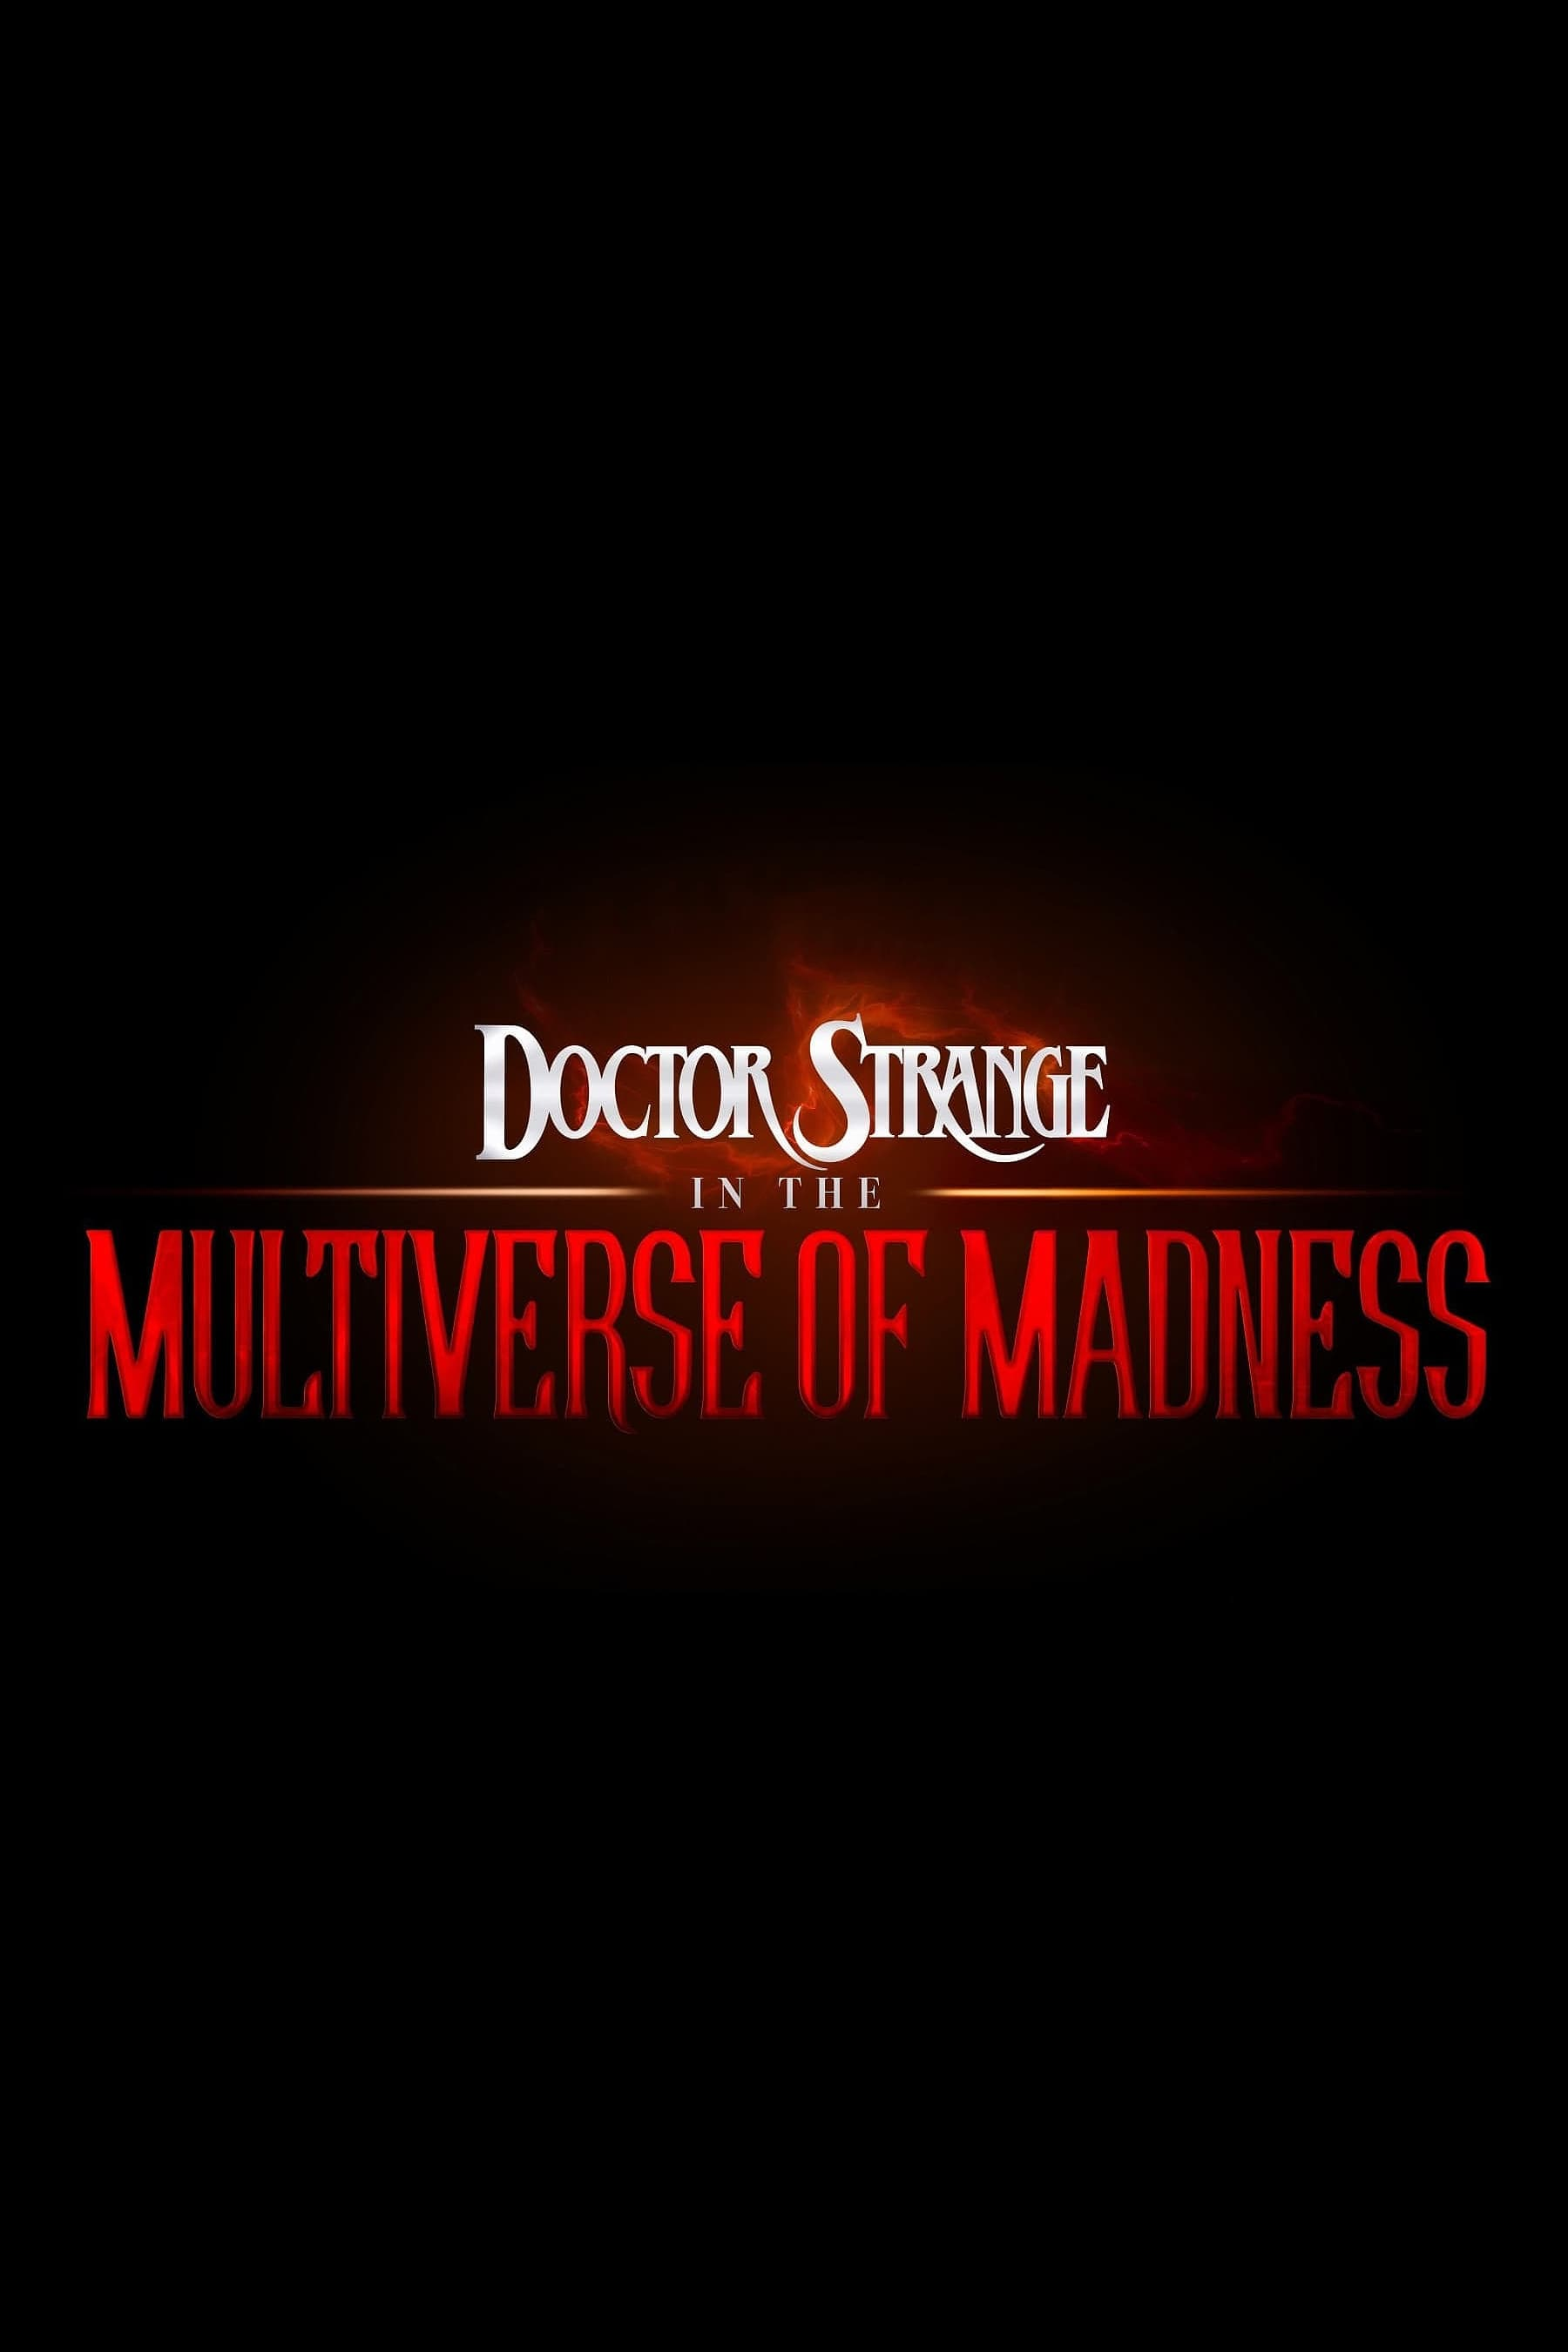 Doctor Strange in the Multiverse of Madness (2022)